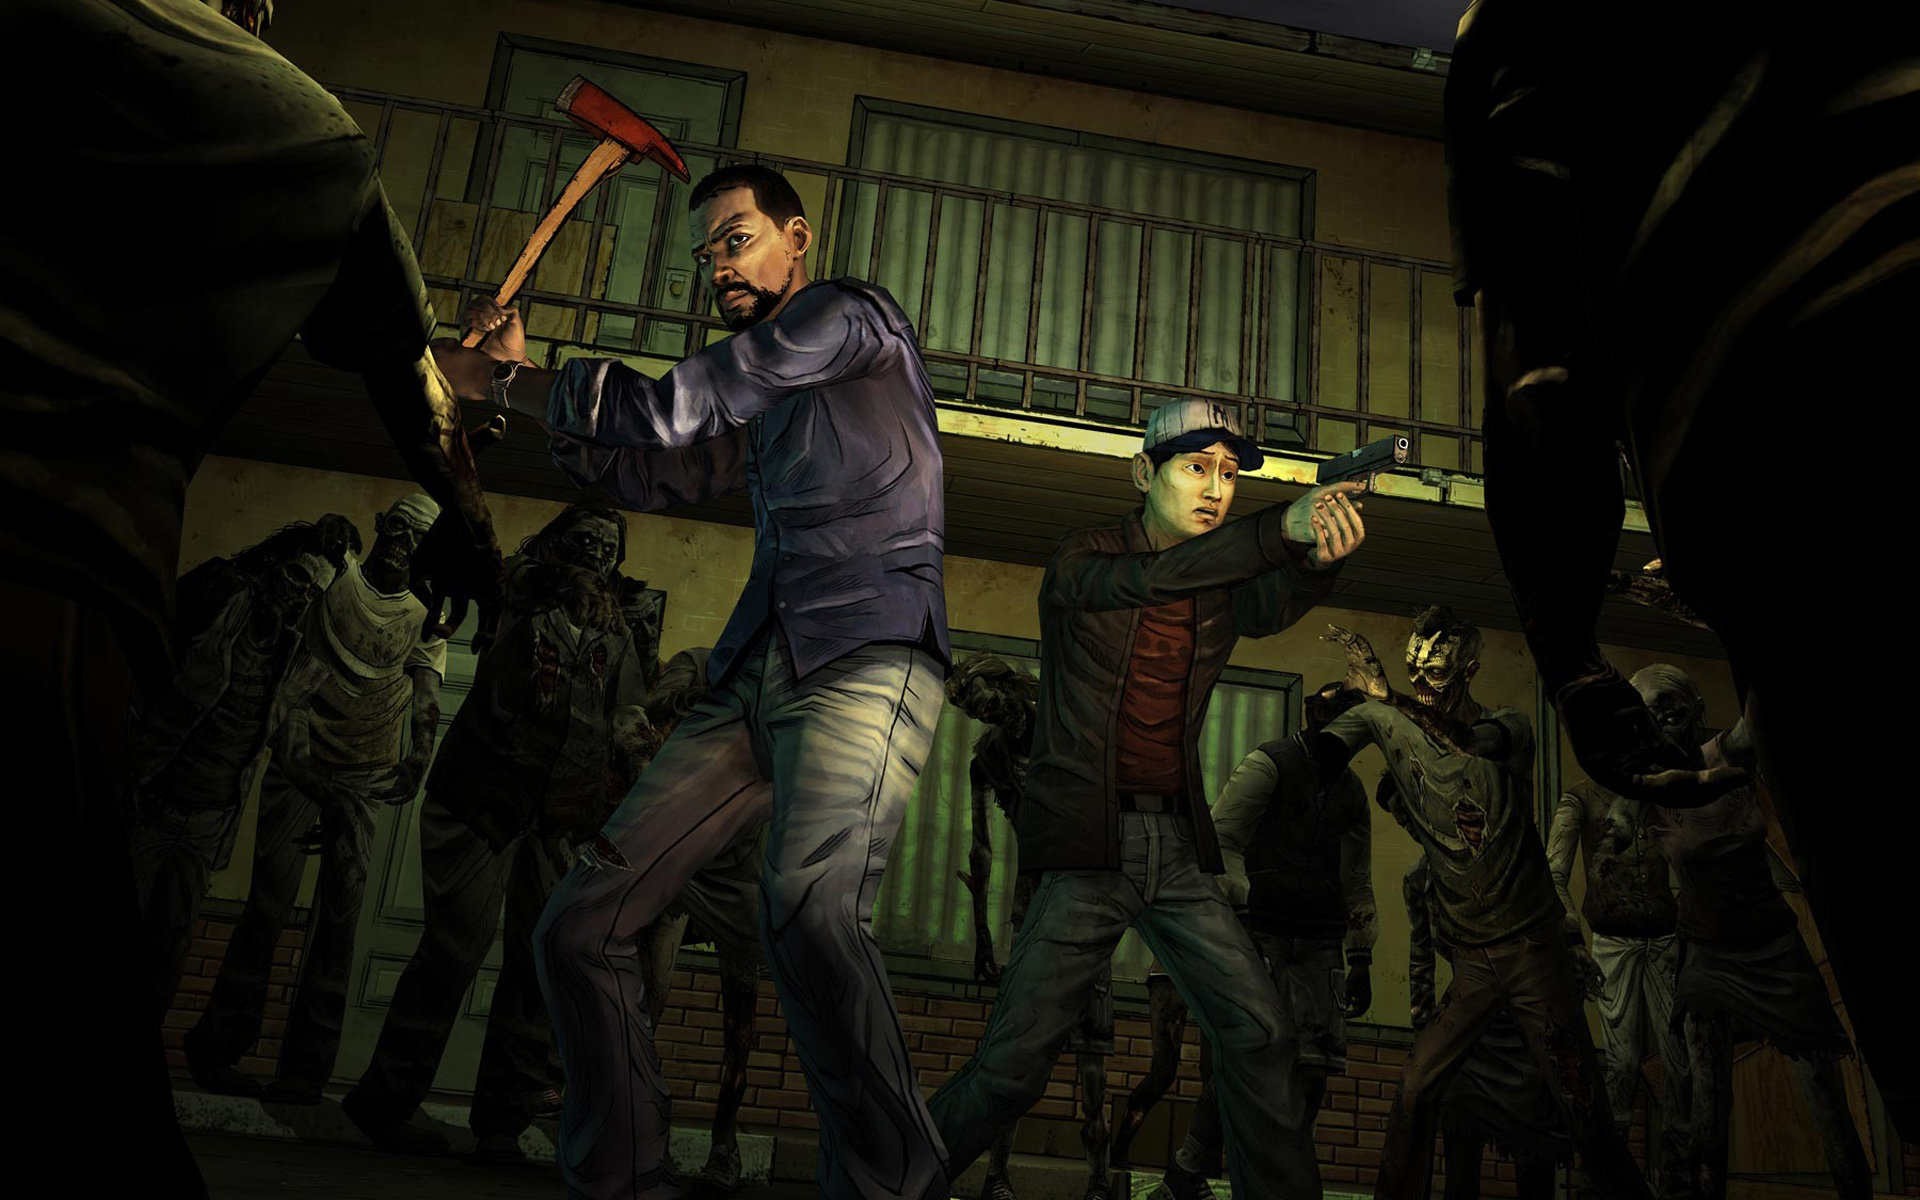 The Walking Dead Video Game Wallpapers Hd For Desktop